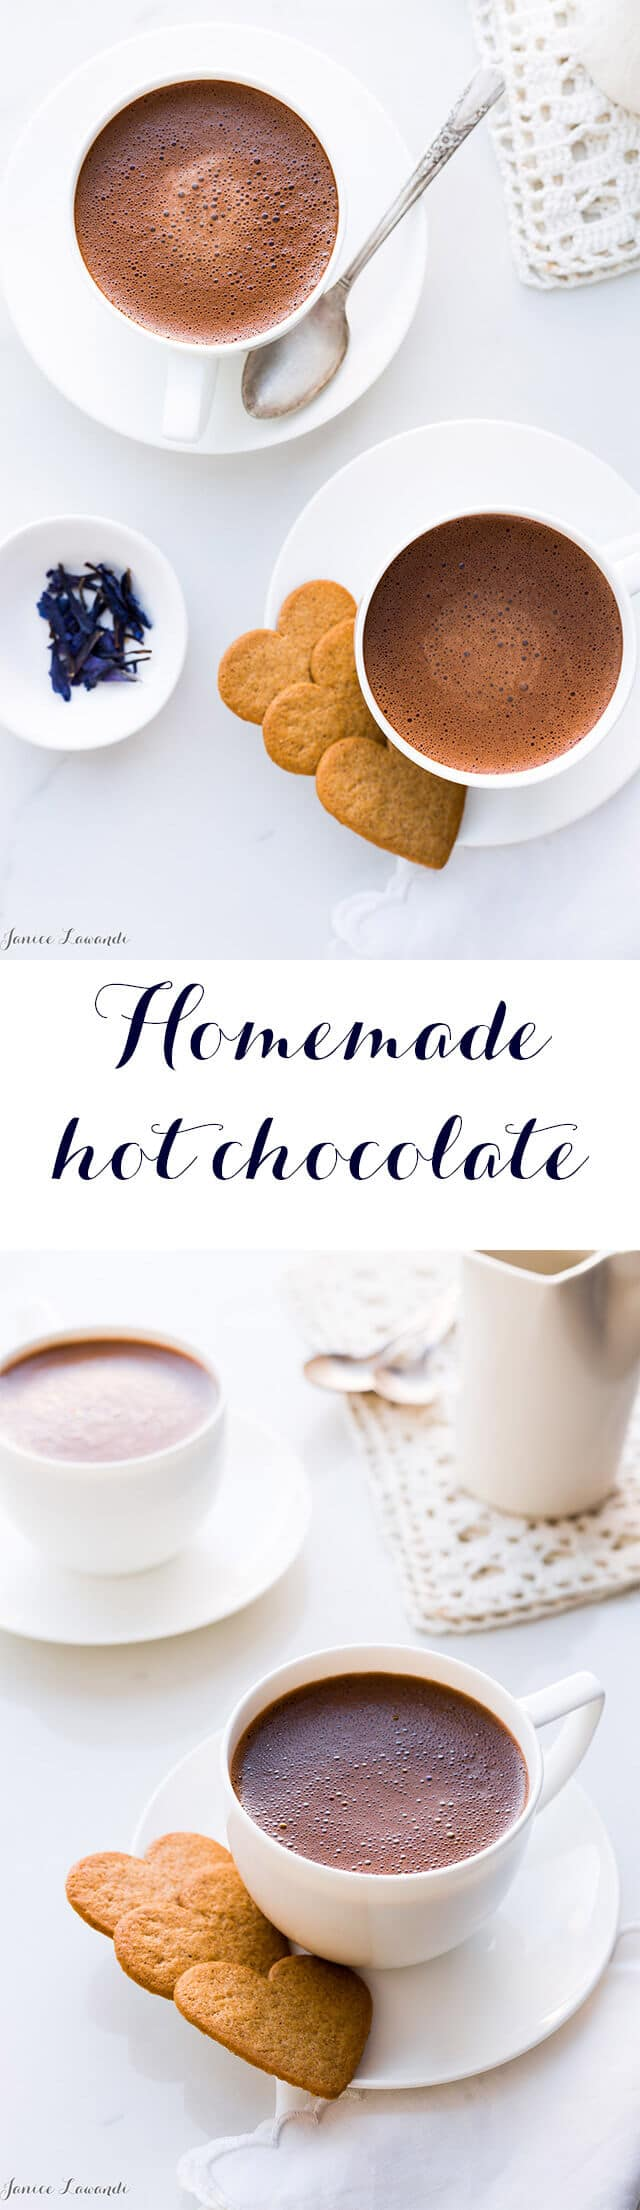 Real hot chocolate made from dark chocolate and milk is easy to make and takes just 5 minutes. Only two ingredients in the recipe, unless you want to flavour it or jazz it up.